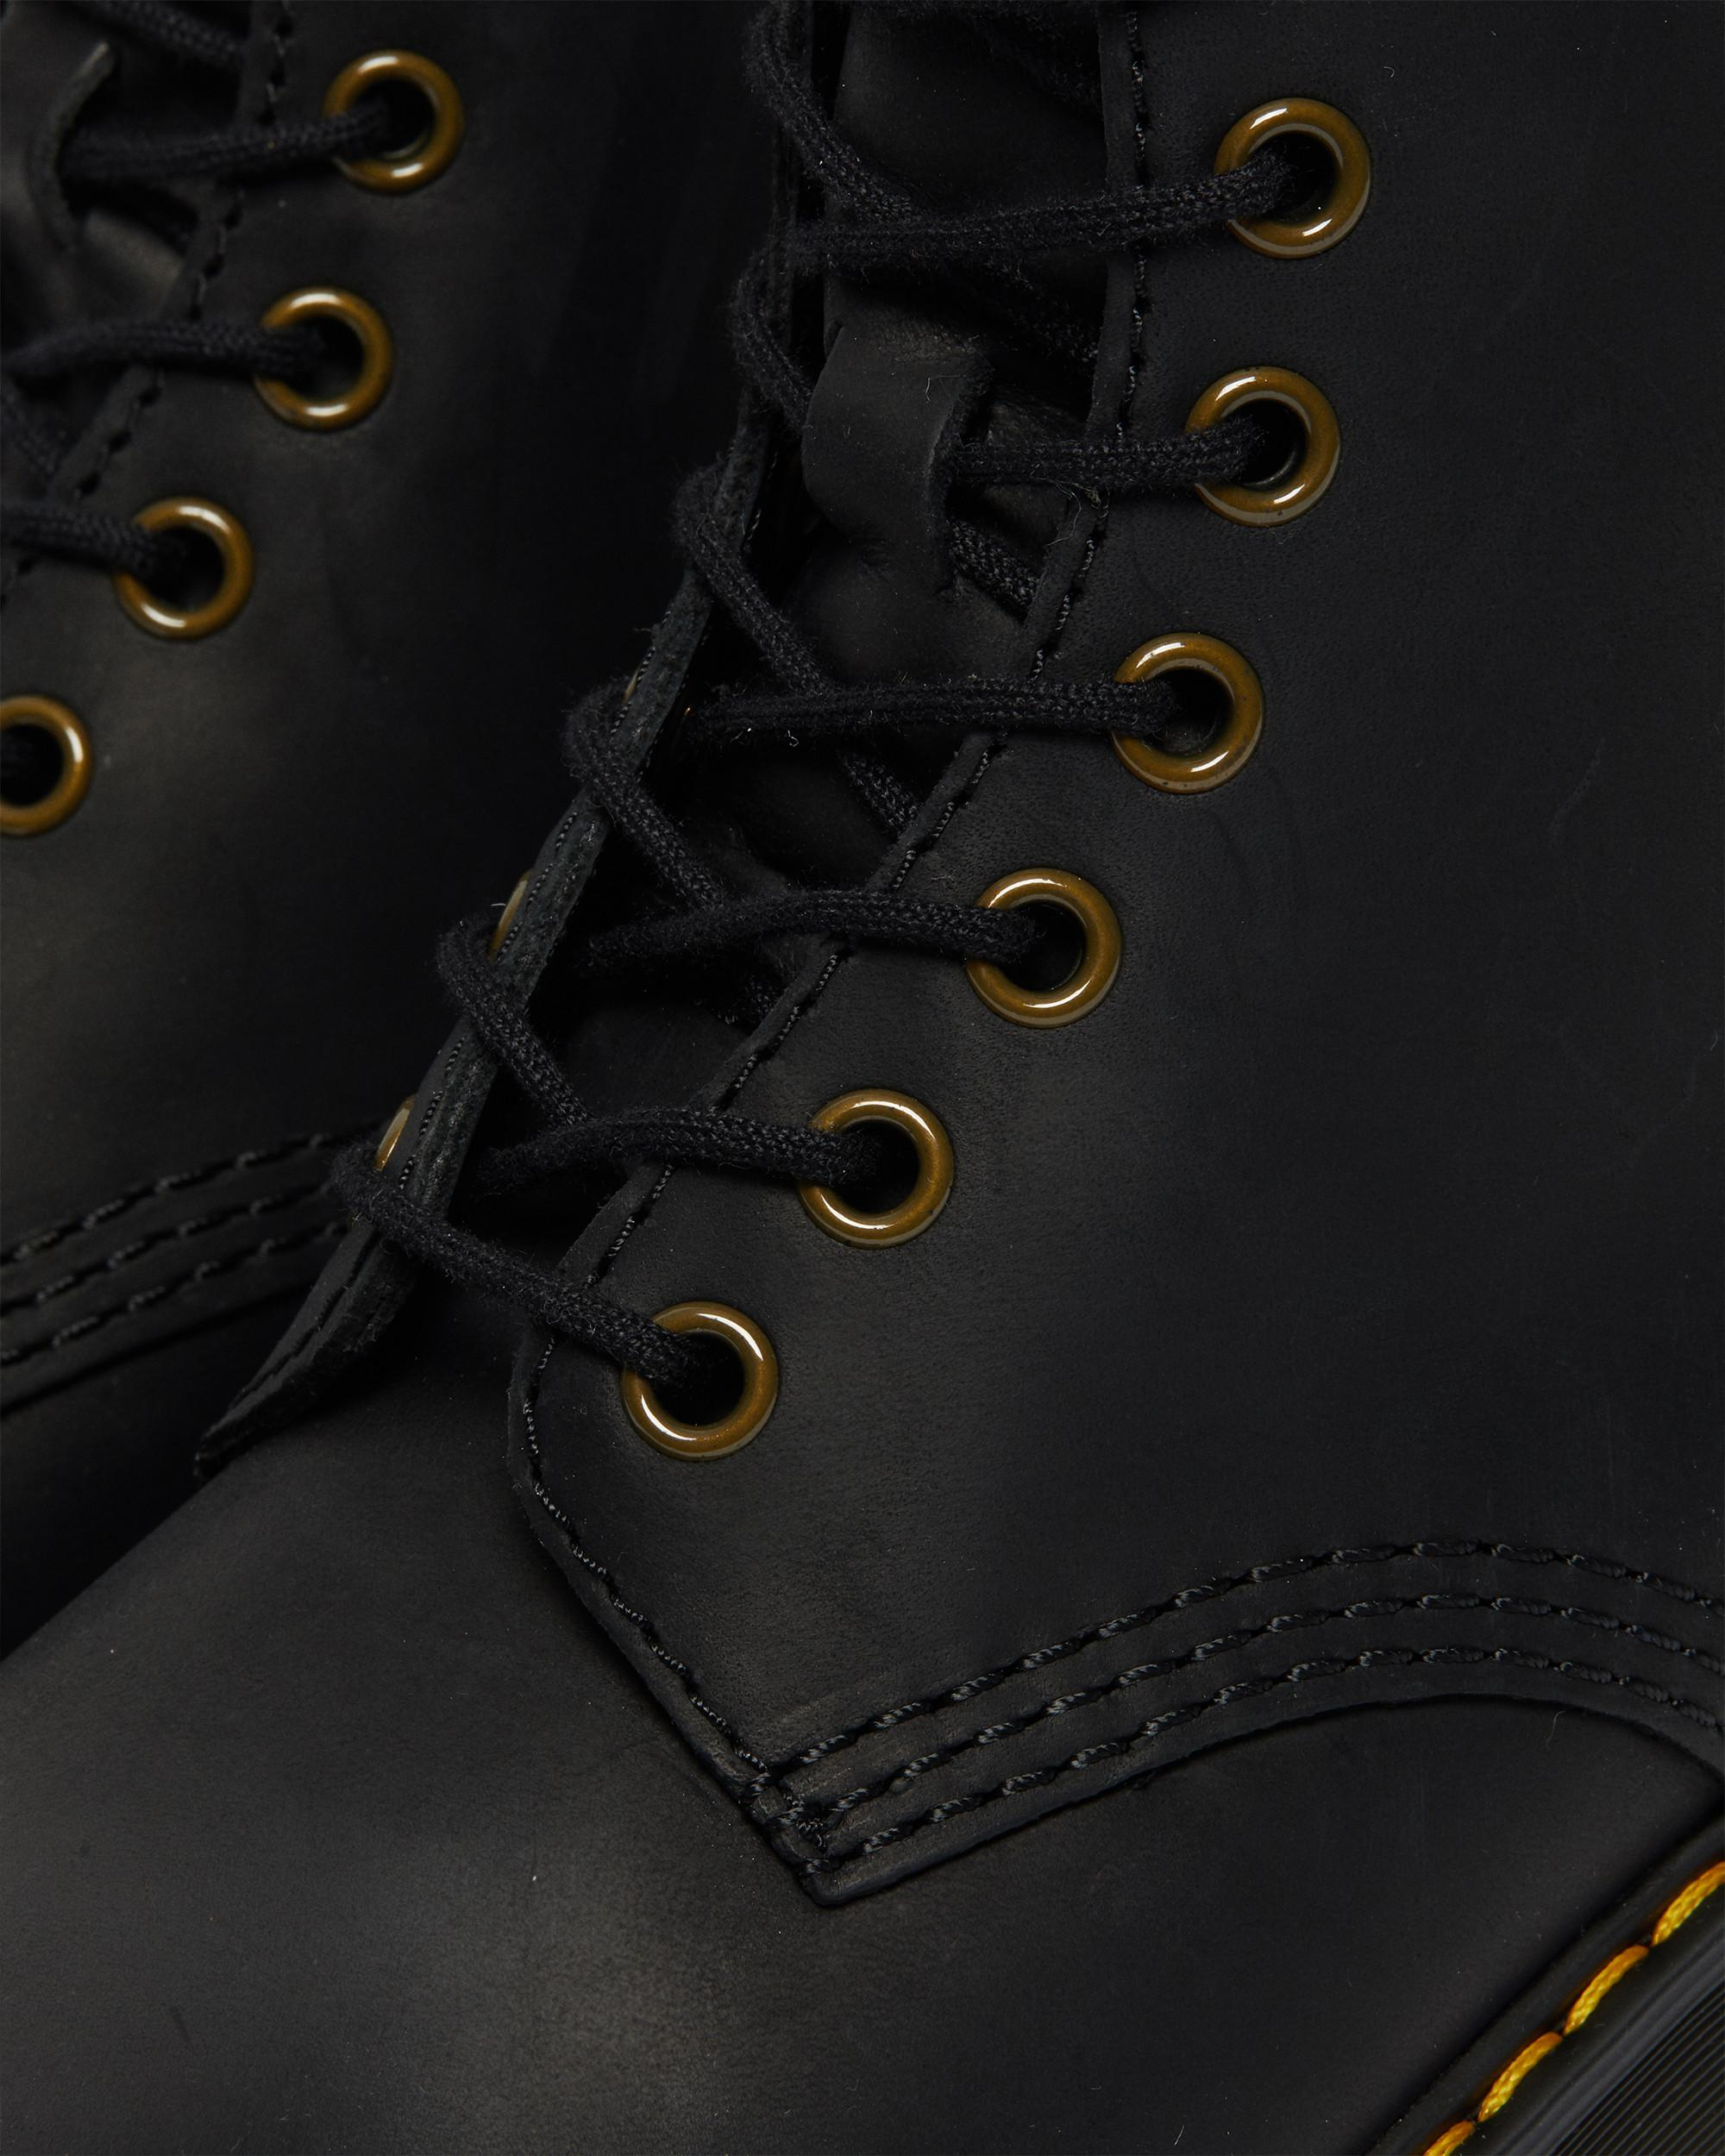 DR MARTENS SHRIVER HI WOMEN'S WYOMING LEATHER HEELED BOOTS